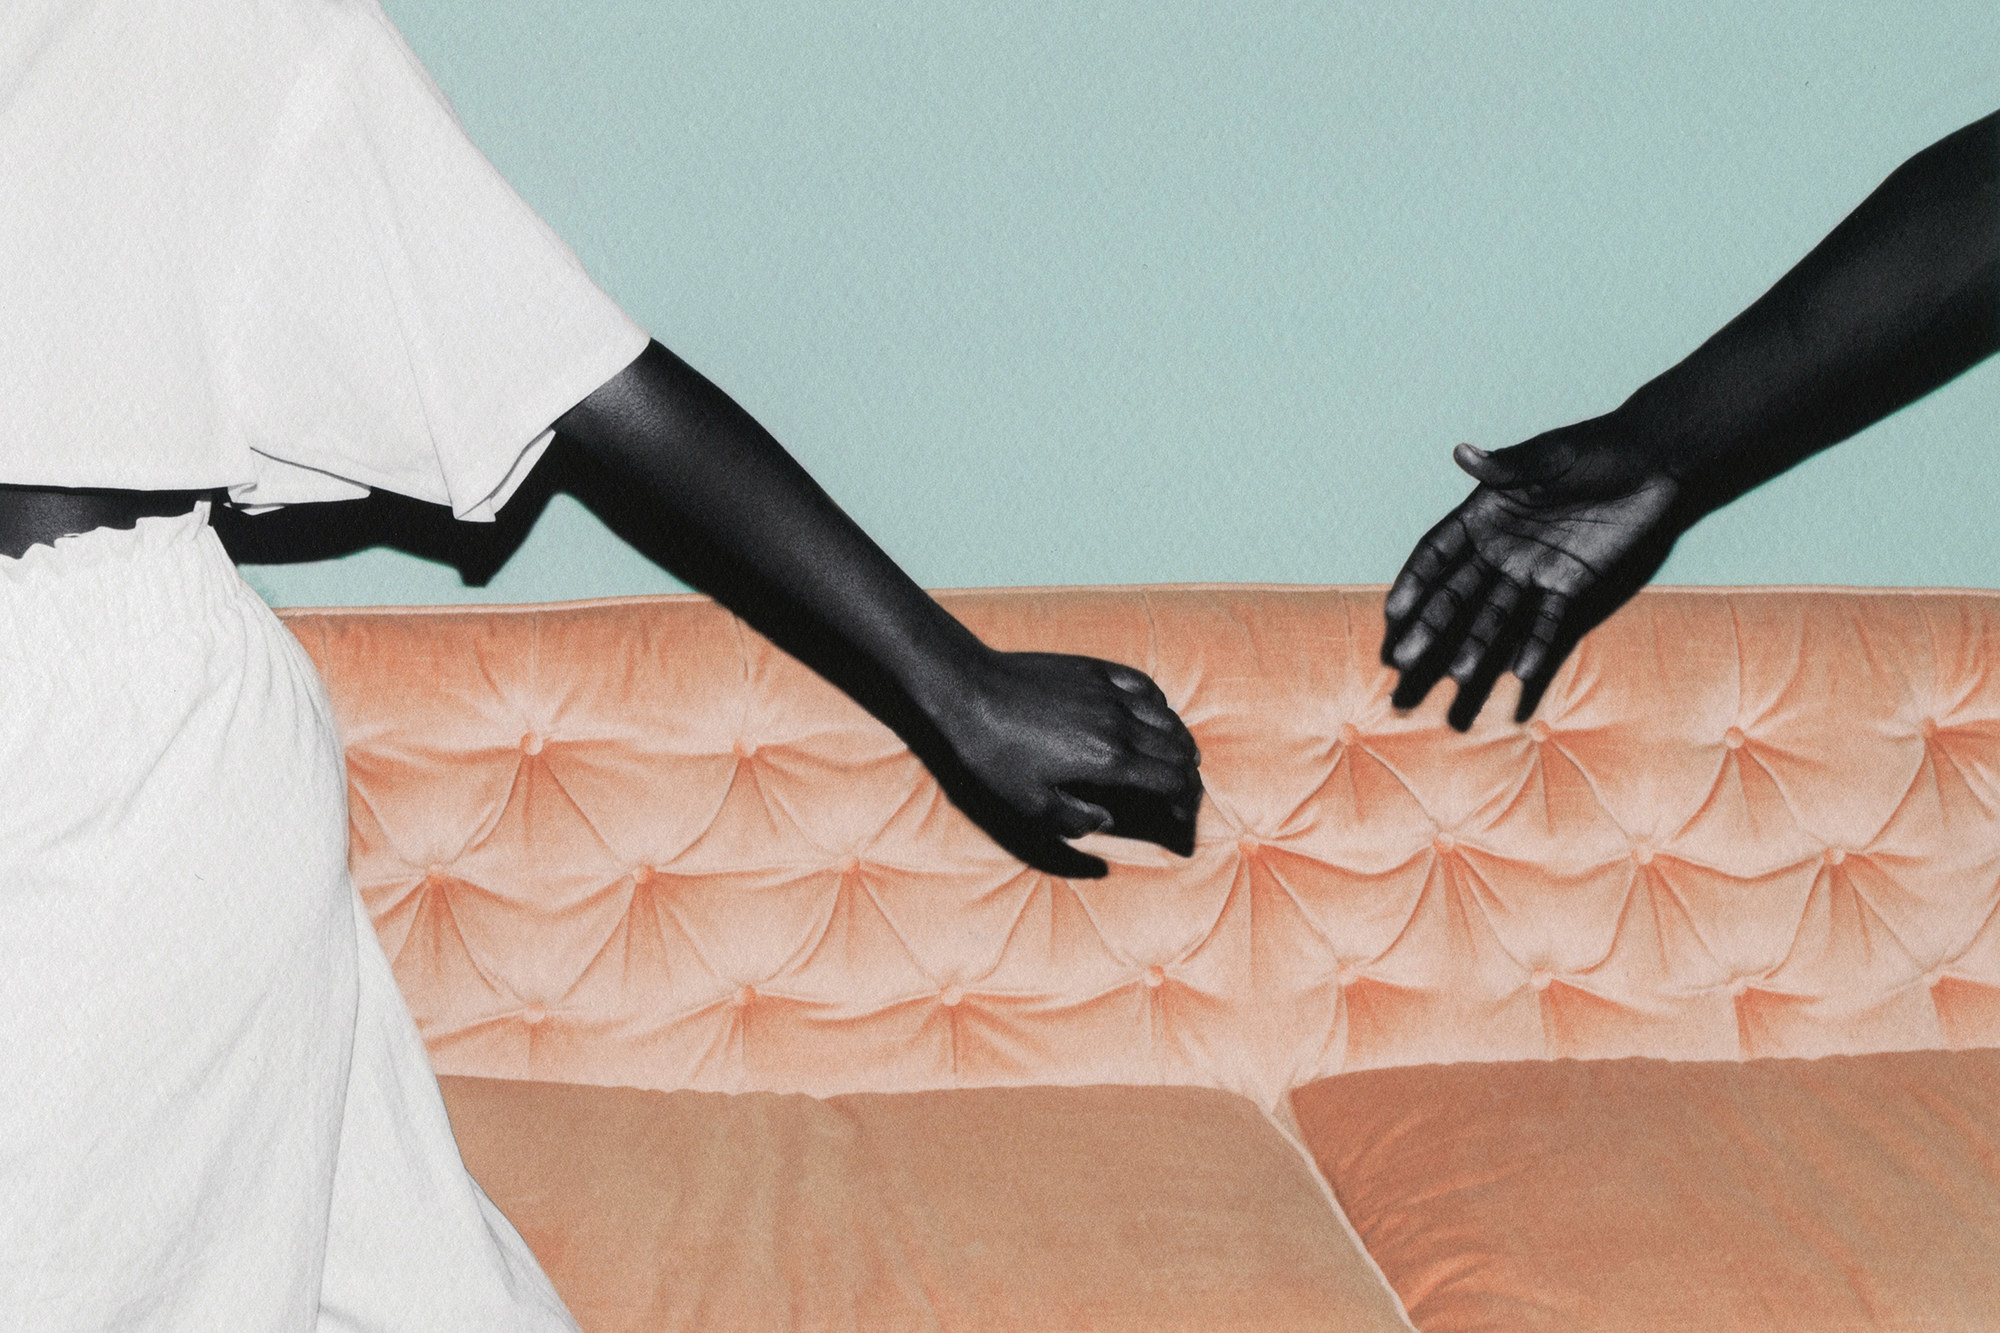 Man is reaching for a woman's hand as she is letting him go, their arms shown against a sofa background